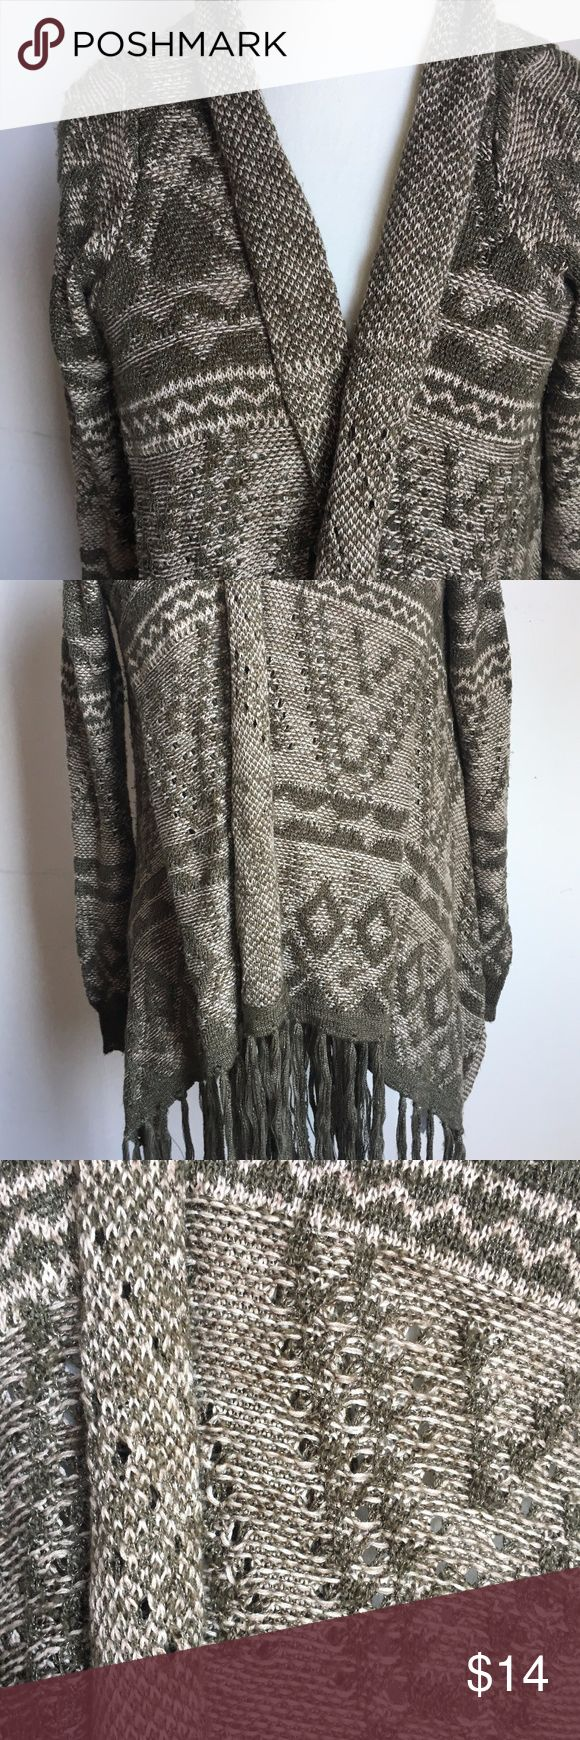 LIKE NEW Tribal Sweater Cardigan with Fringe Perfect for fall and winter! Unique cardigan sweater (short duster) with slant fringe (not overzealous) hem and slightly higher straight back hem EUC! size. Medium color. Olive Green, Cream, with barely noticeable shiny pearl like thread woven through (not glittery, bling looking at all) print. Tribal, Southwest, Aztec, Western Sweaters Cardigans